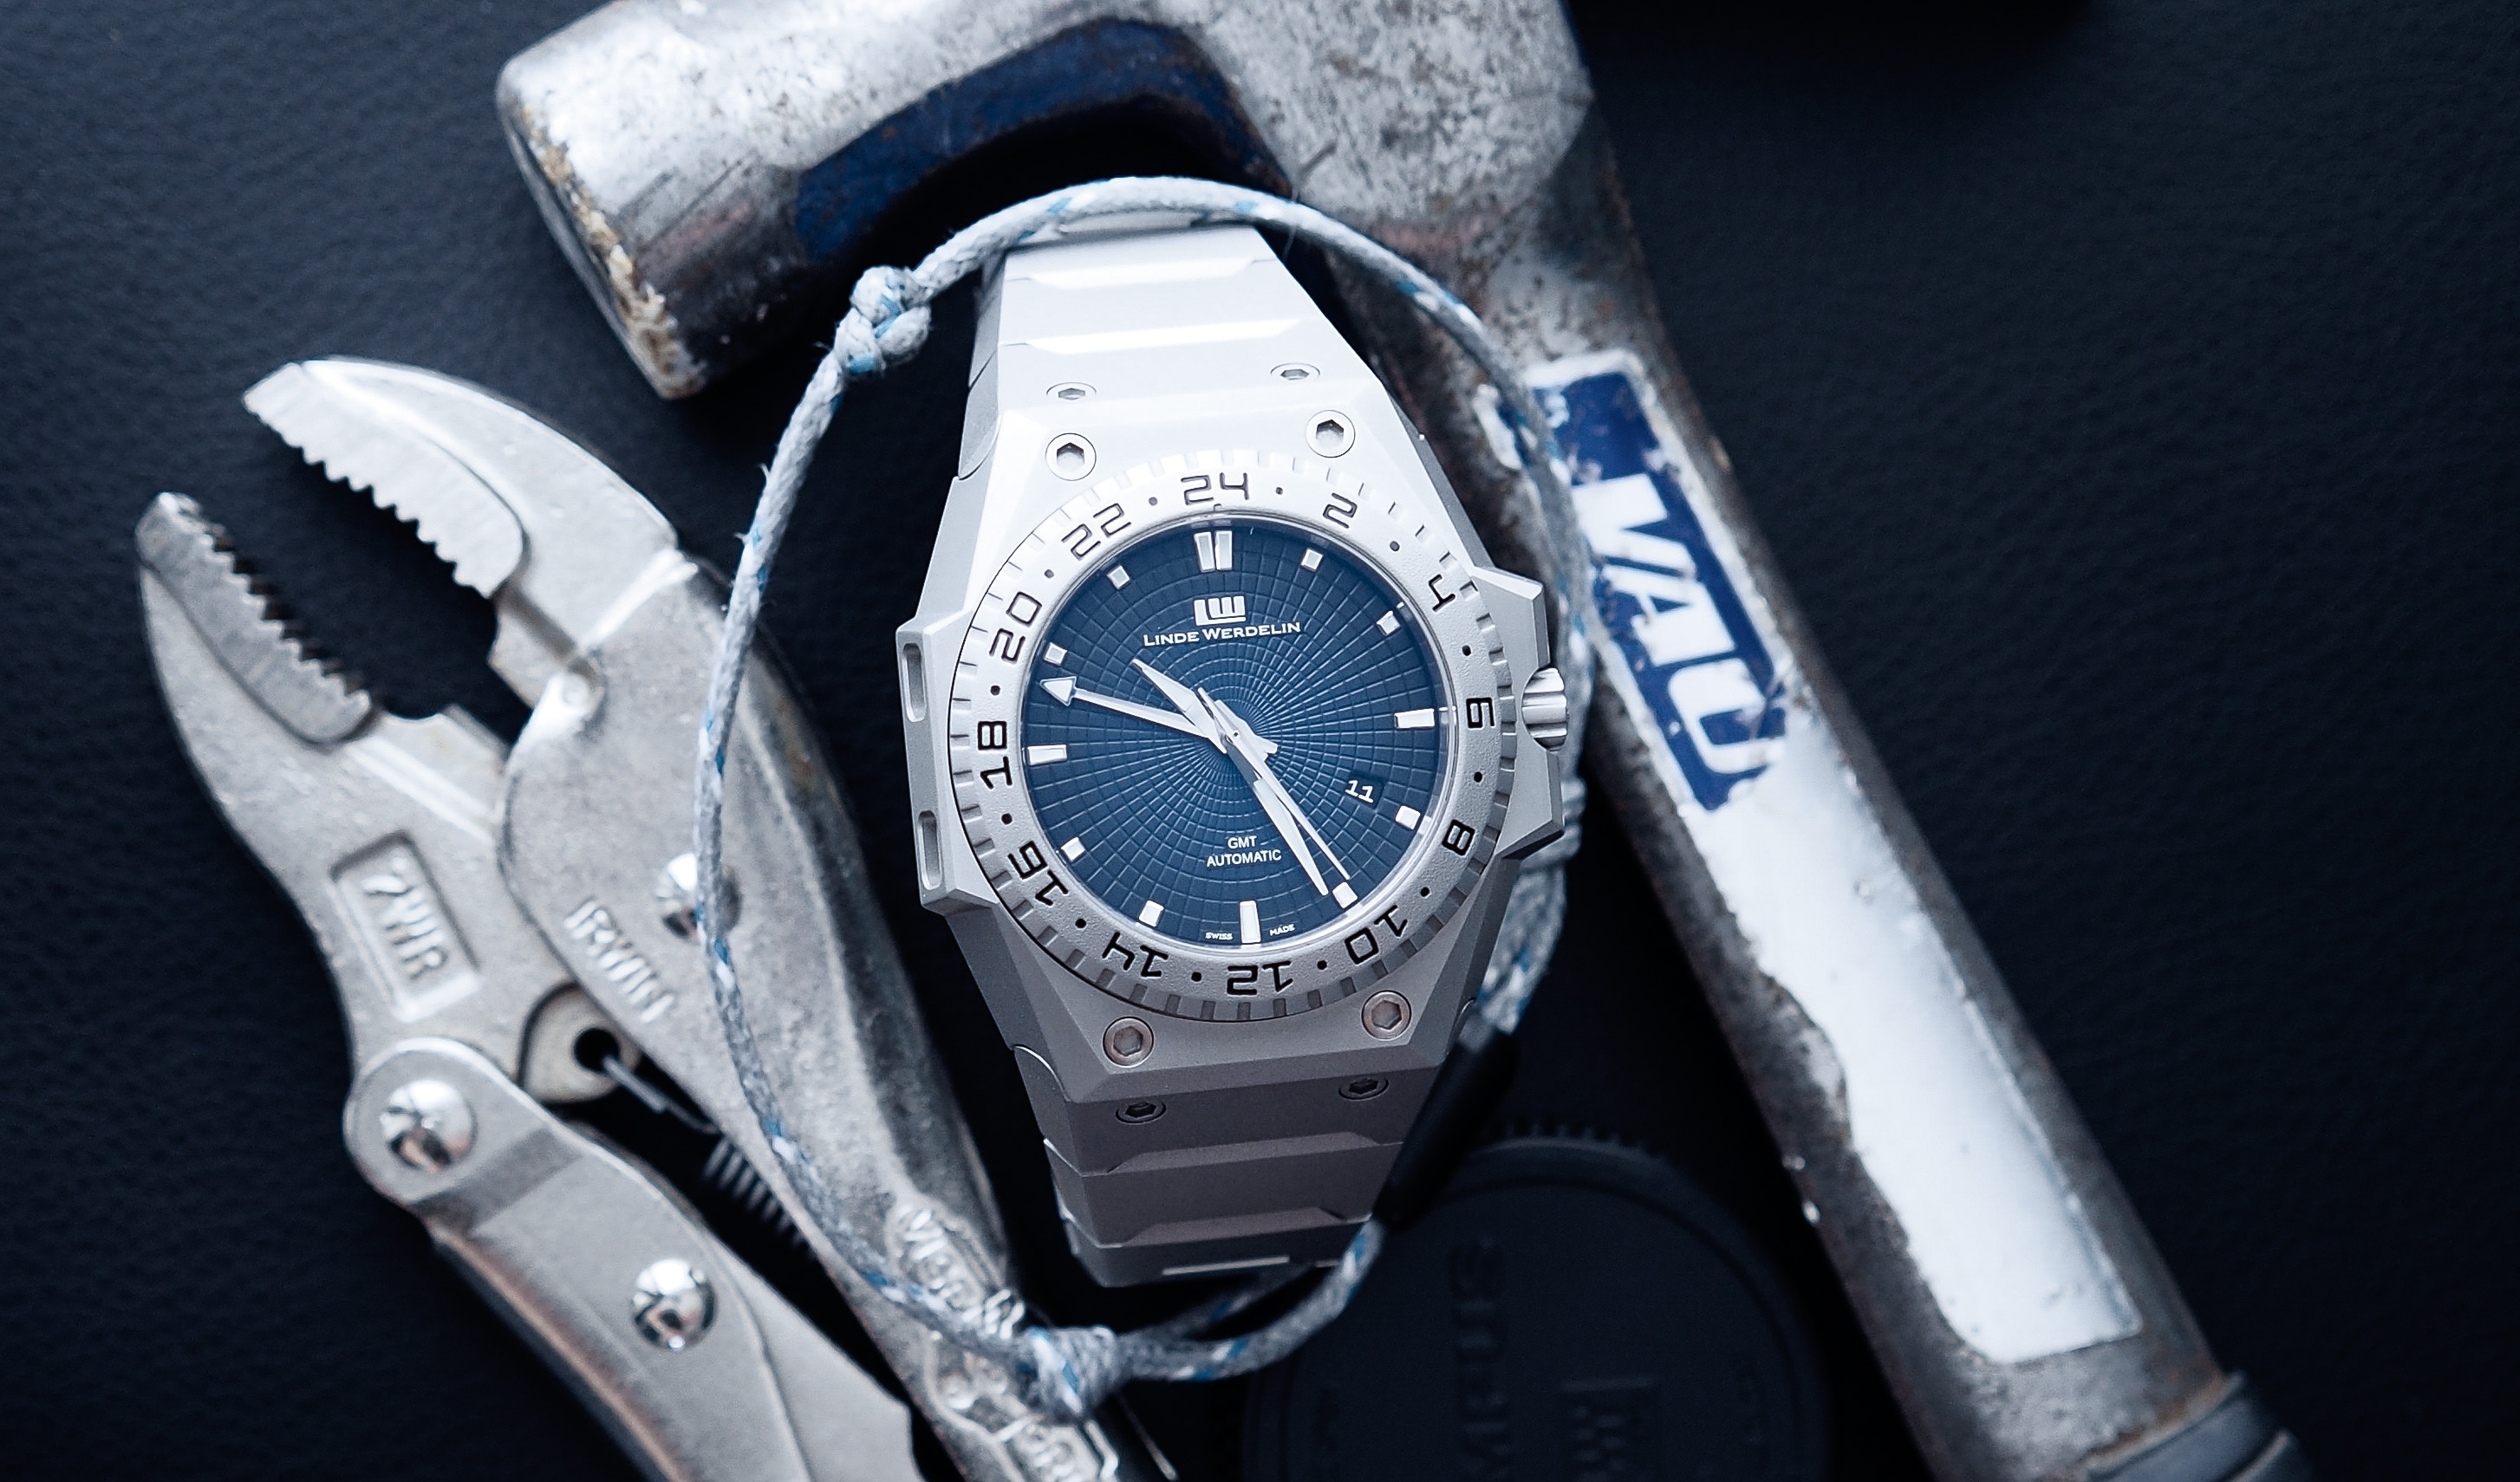 IN-DEPTH: Linde Werdelin release '3 Timer' GMT in sandblasted steel with stunning blue gradient dial, limited to just 55 | Time and Tide Watches